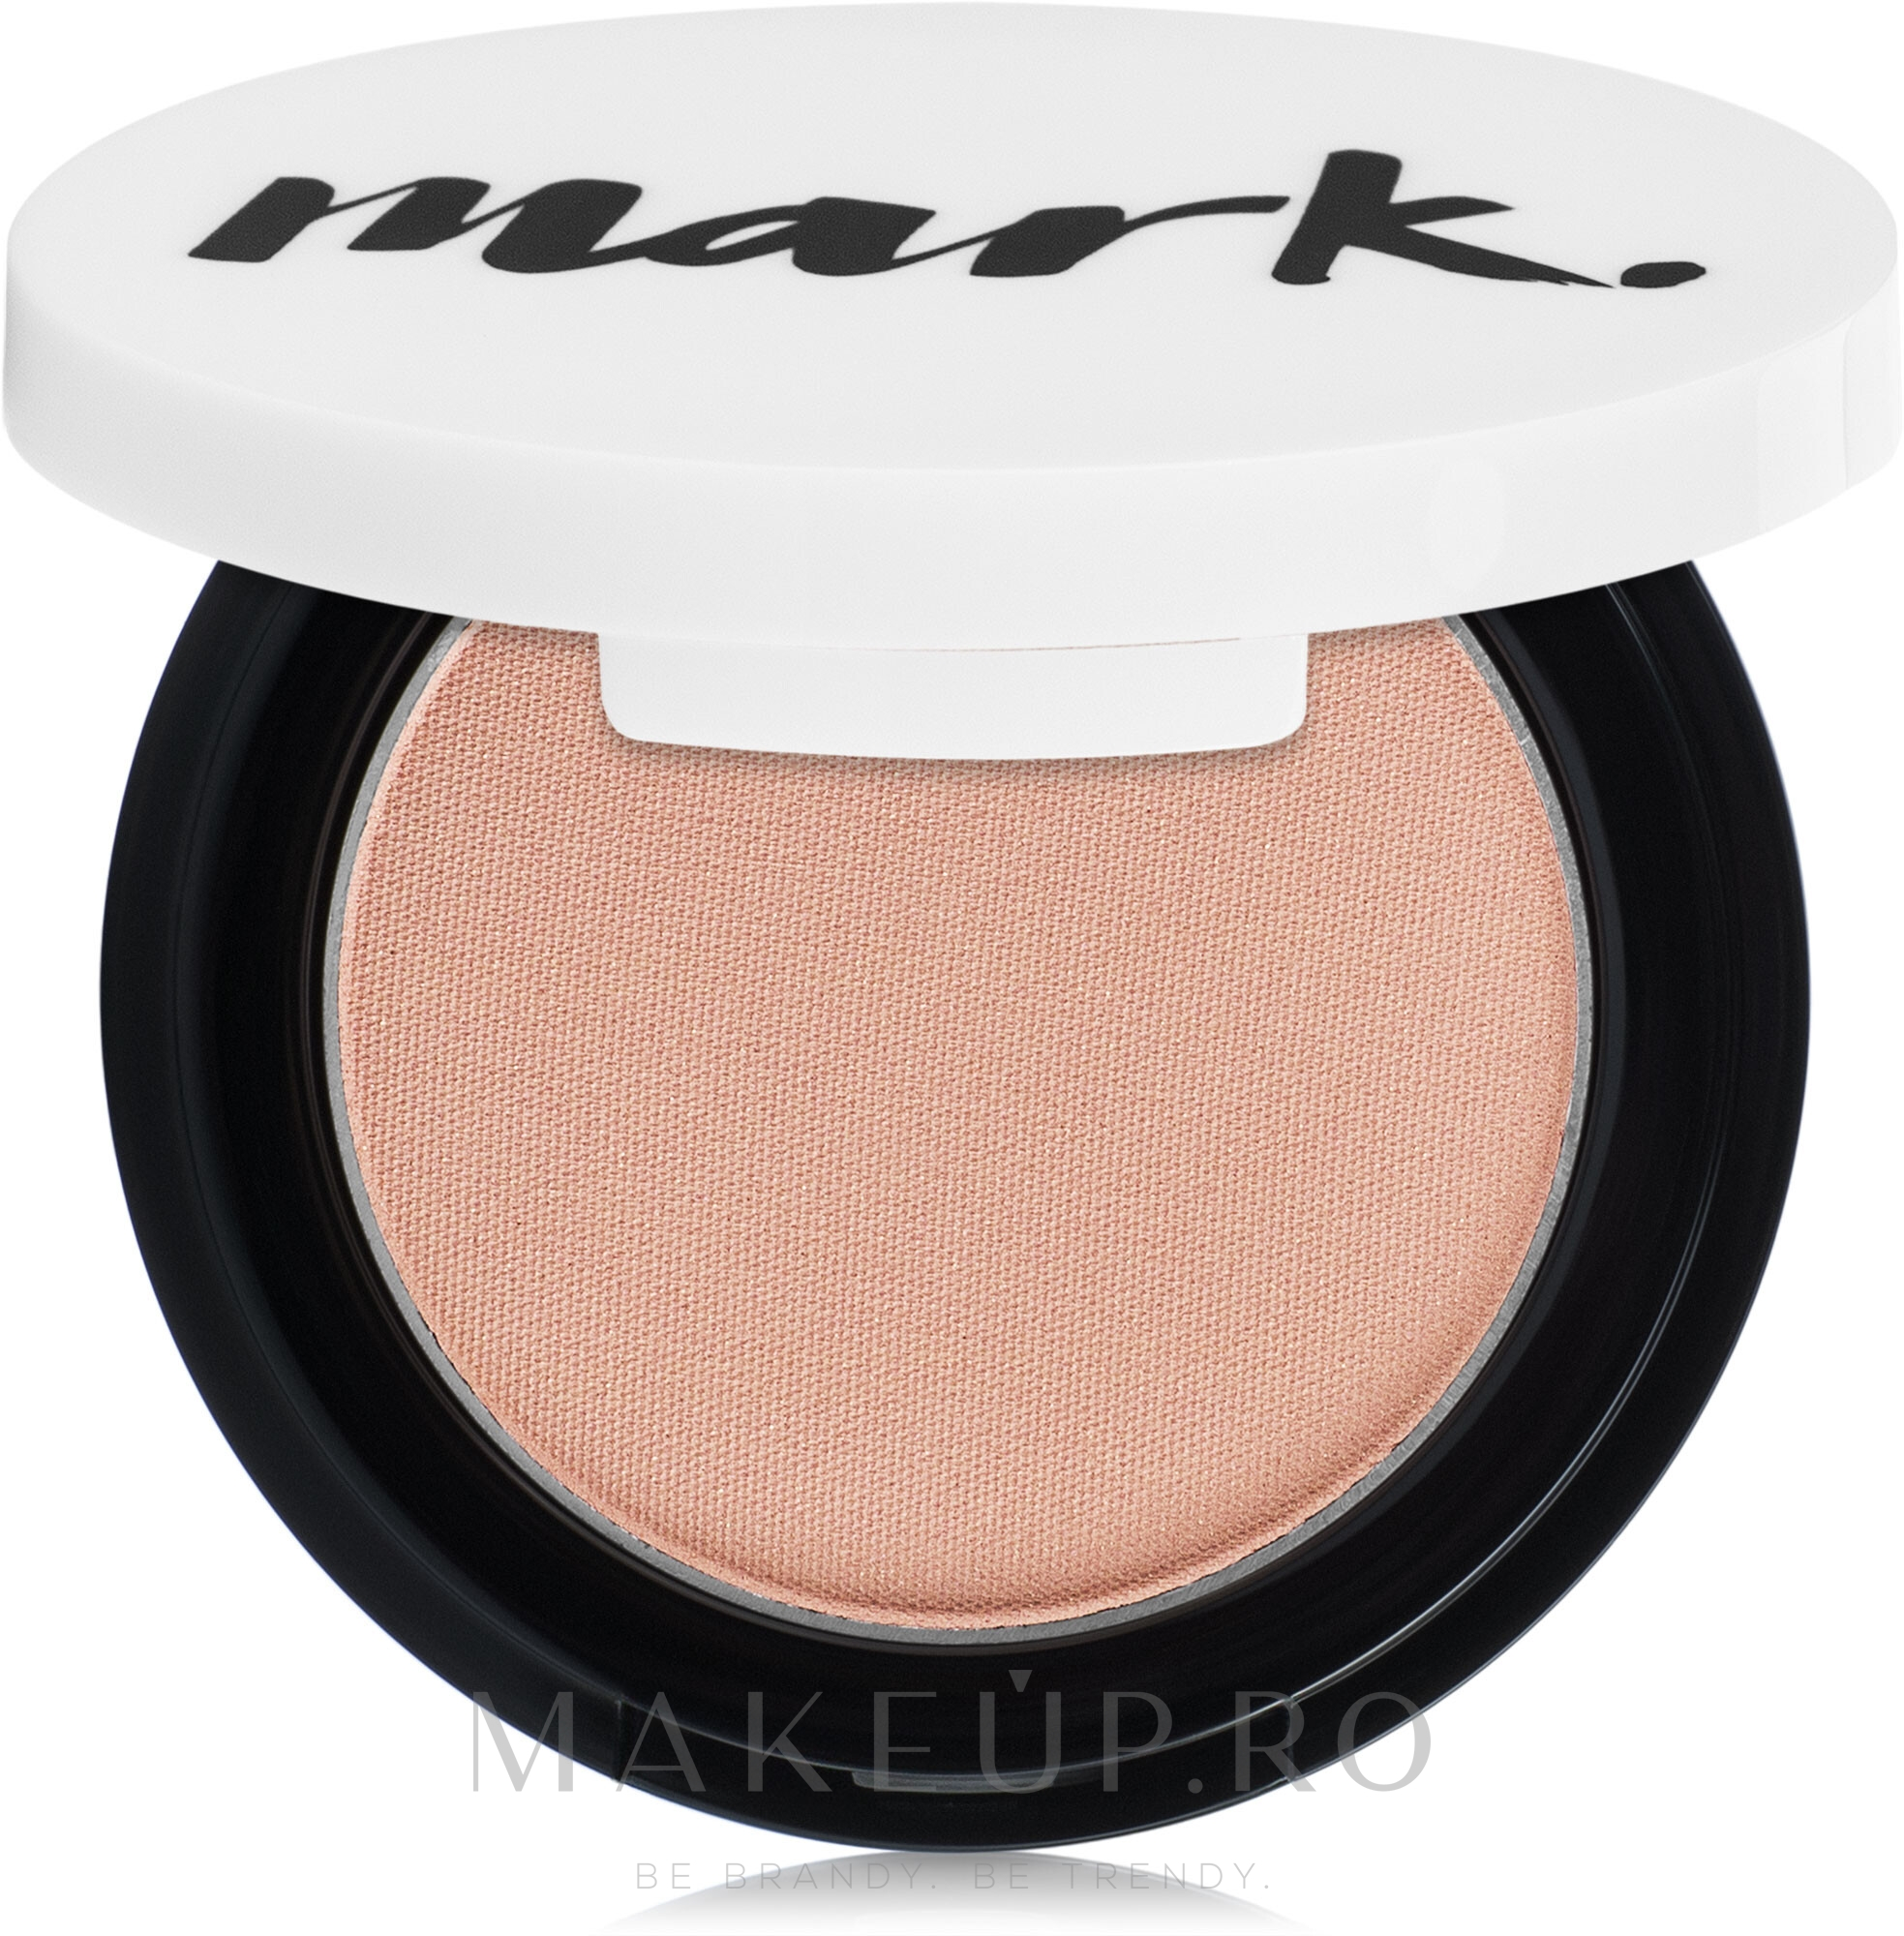 Fard de obraz - Avon Mark Blush — Imagine Soft Peach